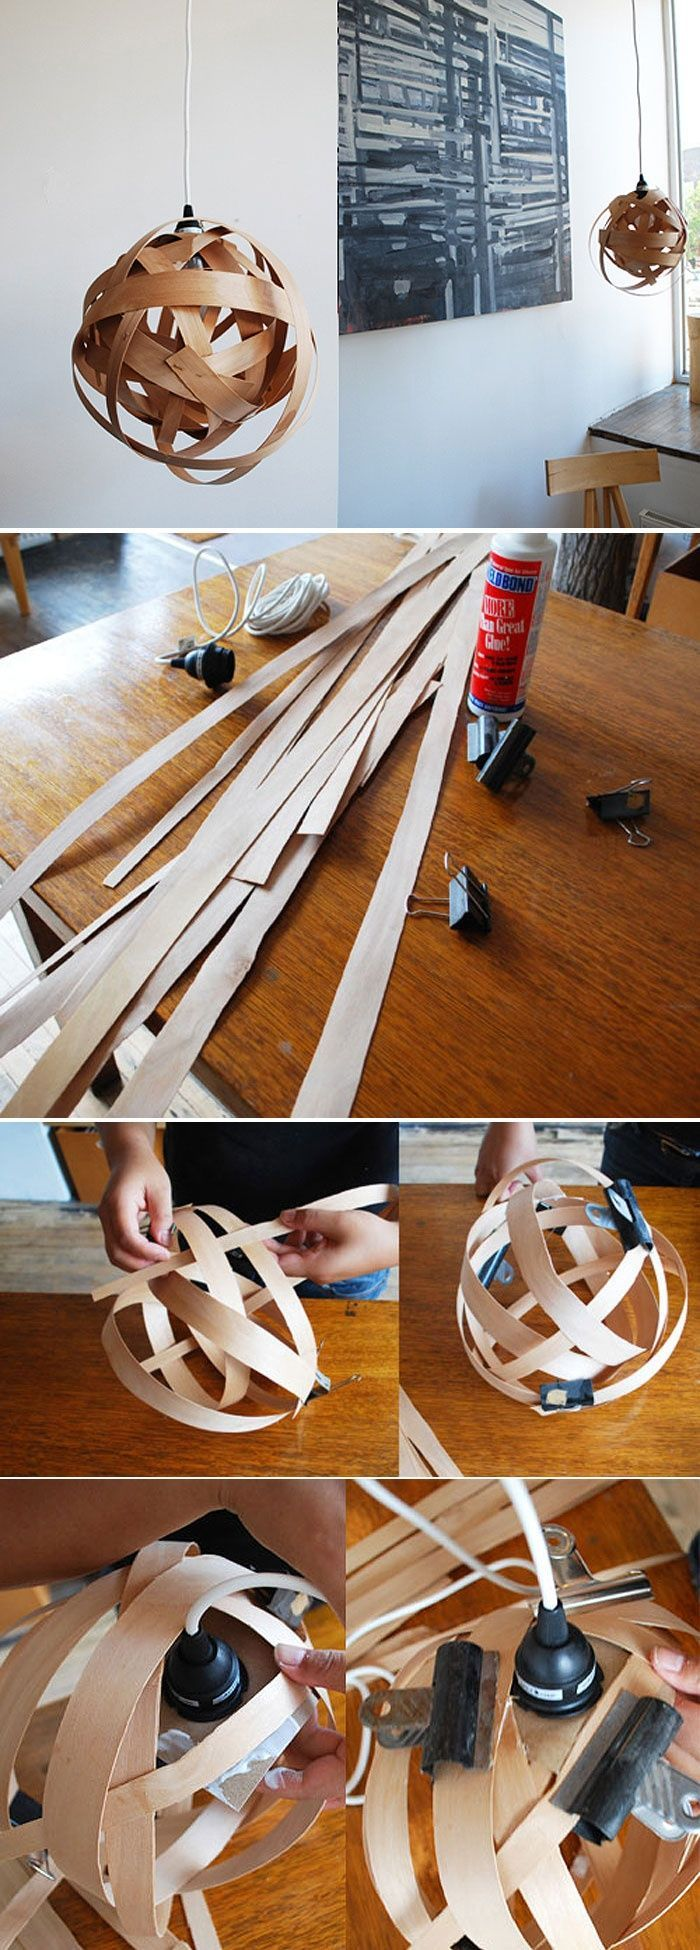 DIY - Make your own wood veneer pendant lighting using wood veneer strips, some glue, bull dog clips to hold them dry and an IKEA Hemma light/cord by Bookhou.